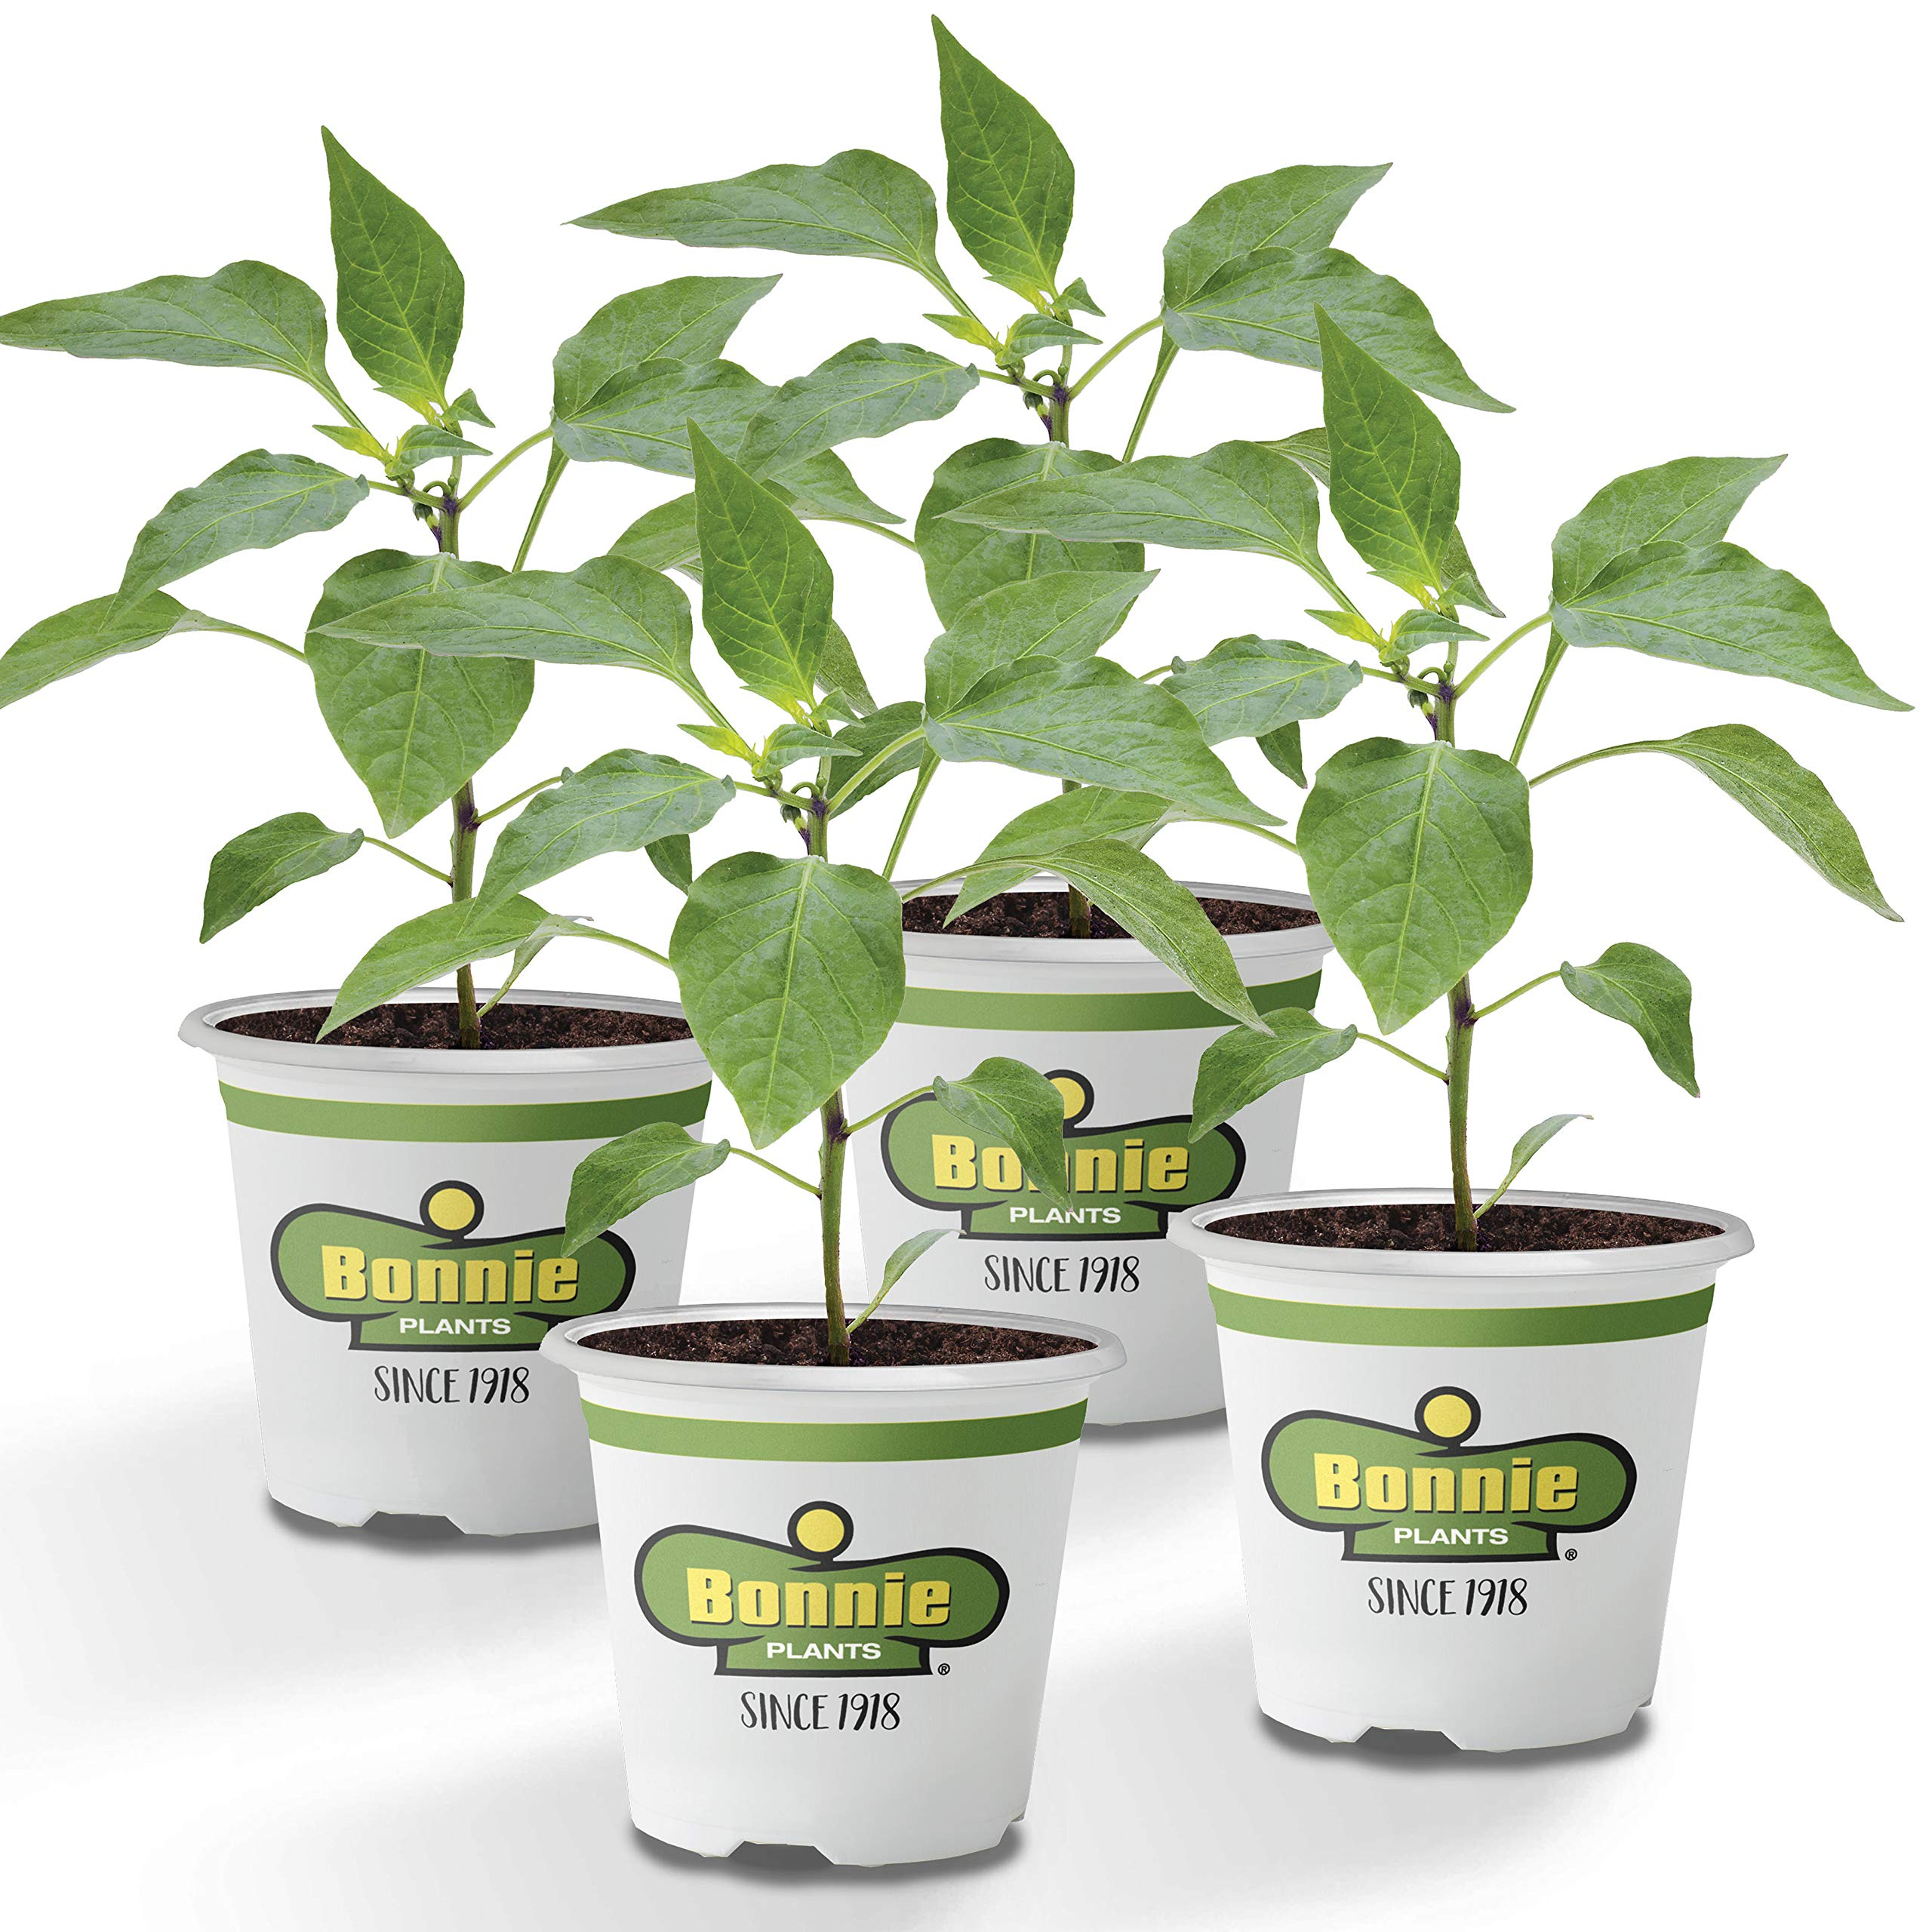 Bonnie Plants Jalapeno Hot Pepper Live Vegetable Plants - 4 Pack   Most Popular Chile Pepper   Non-GMO   24 - 48 Inch Plants   3 Inch Pepper Size